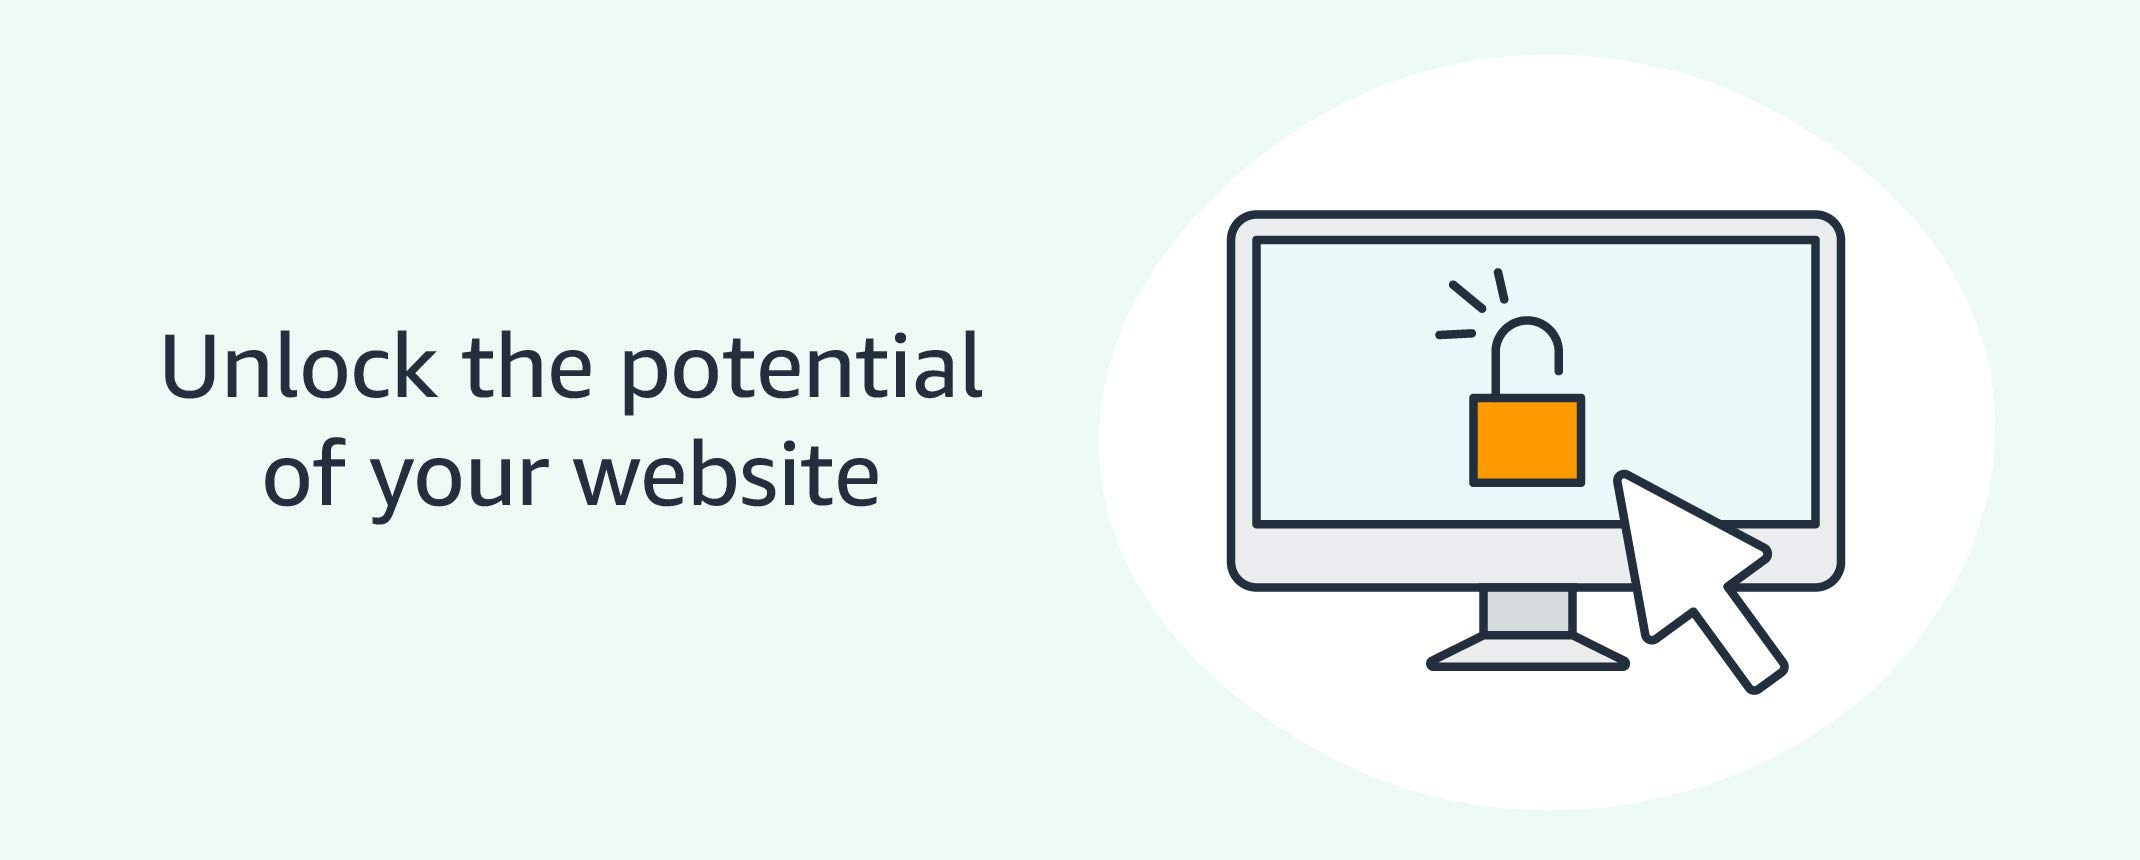 Unlock the potential of your website